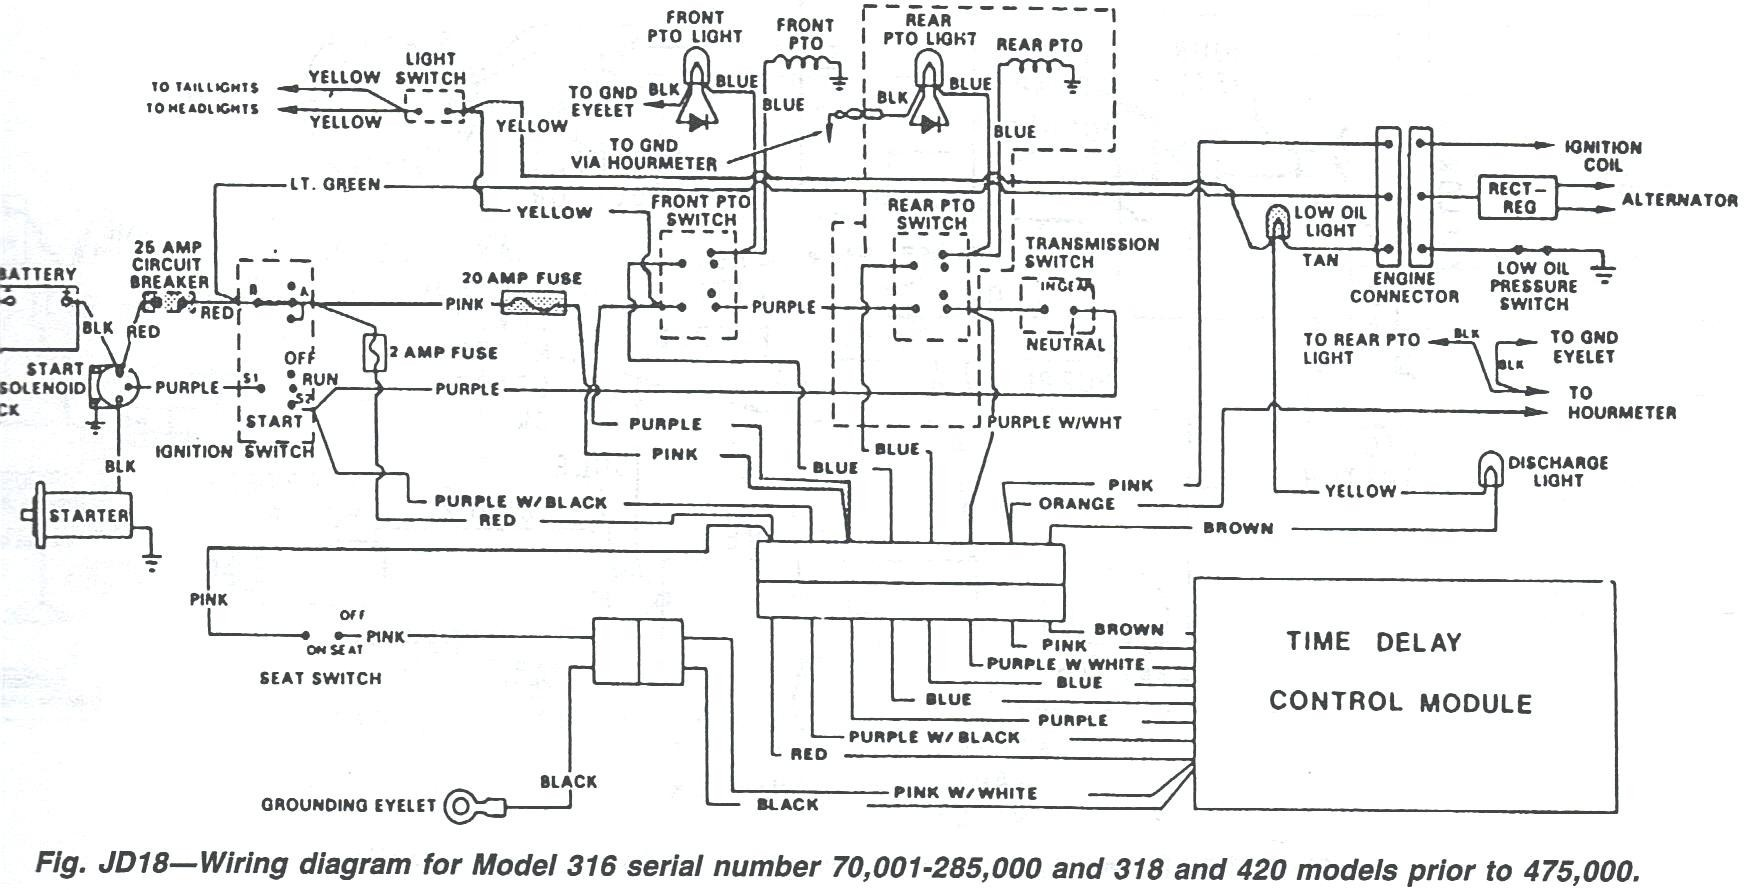 Lt155 Wiring Diagram - Go Wiring Diagram on internet of things diagrams, sincgars radio configurations diagrams, friendship bracelet diagrams, battery diagrams, motor diagrams, switch diagrams, smart car diagrams, led circuit diagrams, transformer diagrams, gmc fuse box diagrams, series and parallel circuits diagrams, engine diagrams, electronic circuit diagrams, lighting diagrams, pinout diagrams, electrical diagrams, troubleshooting diagrams, honda motorcycle repair diagrams, hvac diagrams,